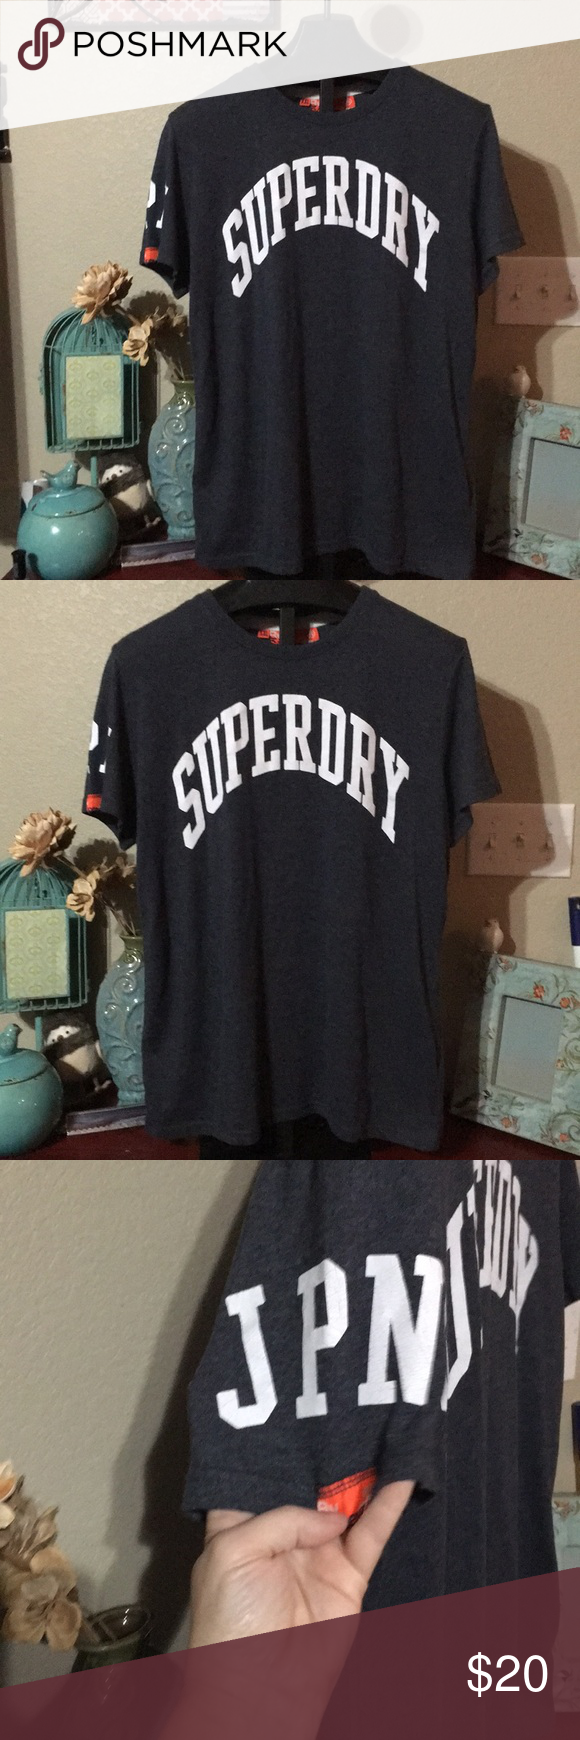 9c186462 By Superdry men's XXL By Superdry Tag size: XXL Condition: preowned Color:  Gray Fabric: 55% polyester 45% Cotton Features: soft T-Shirt Measurements  Armpit ...